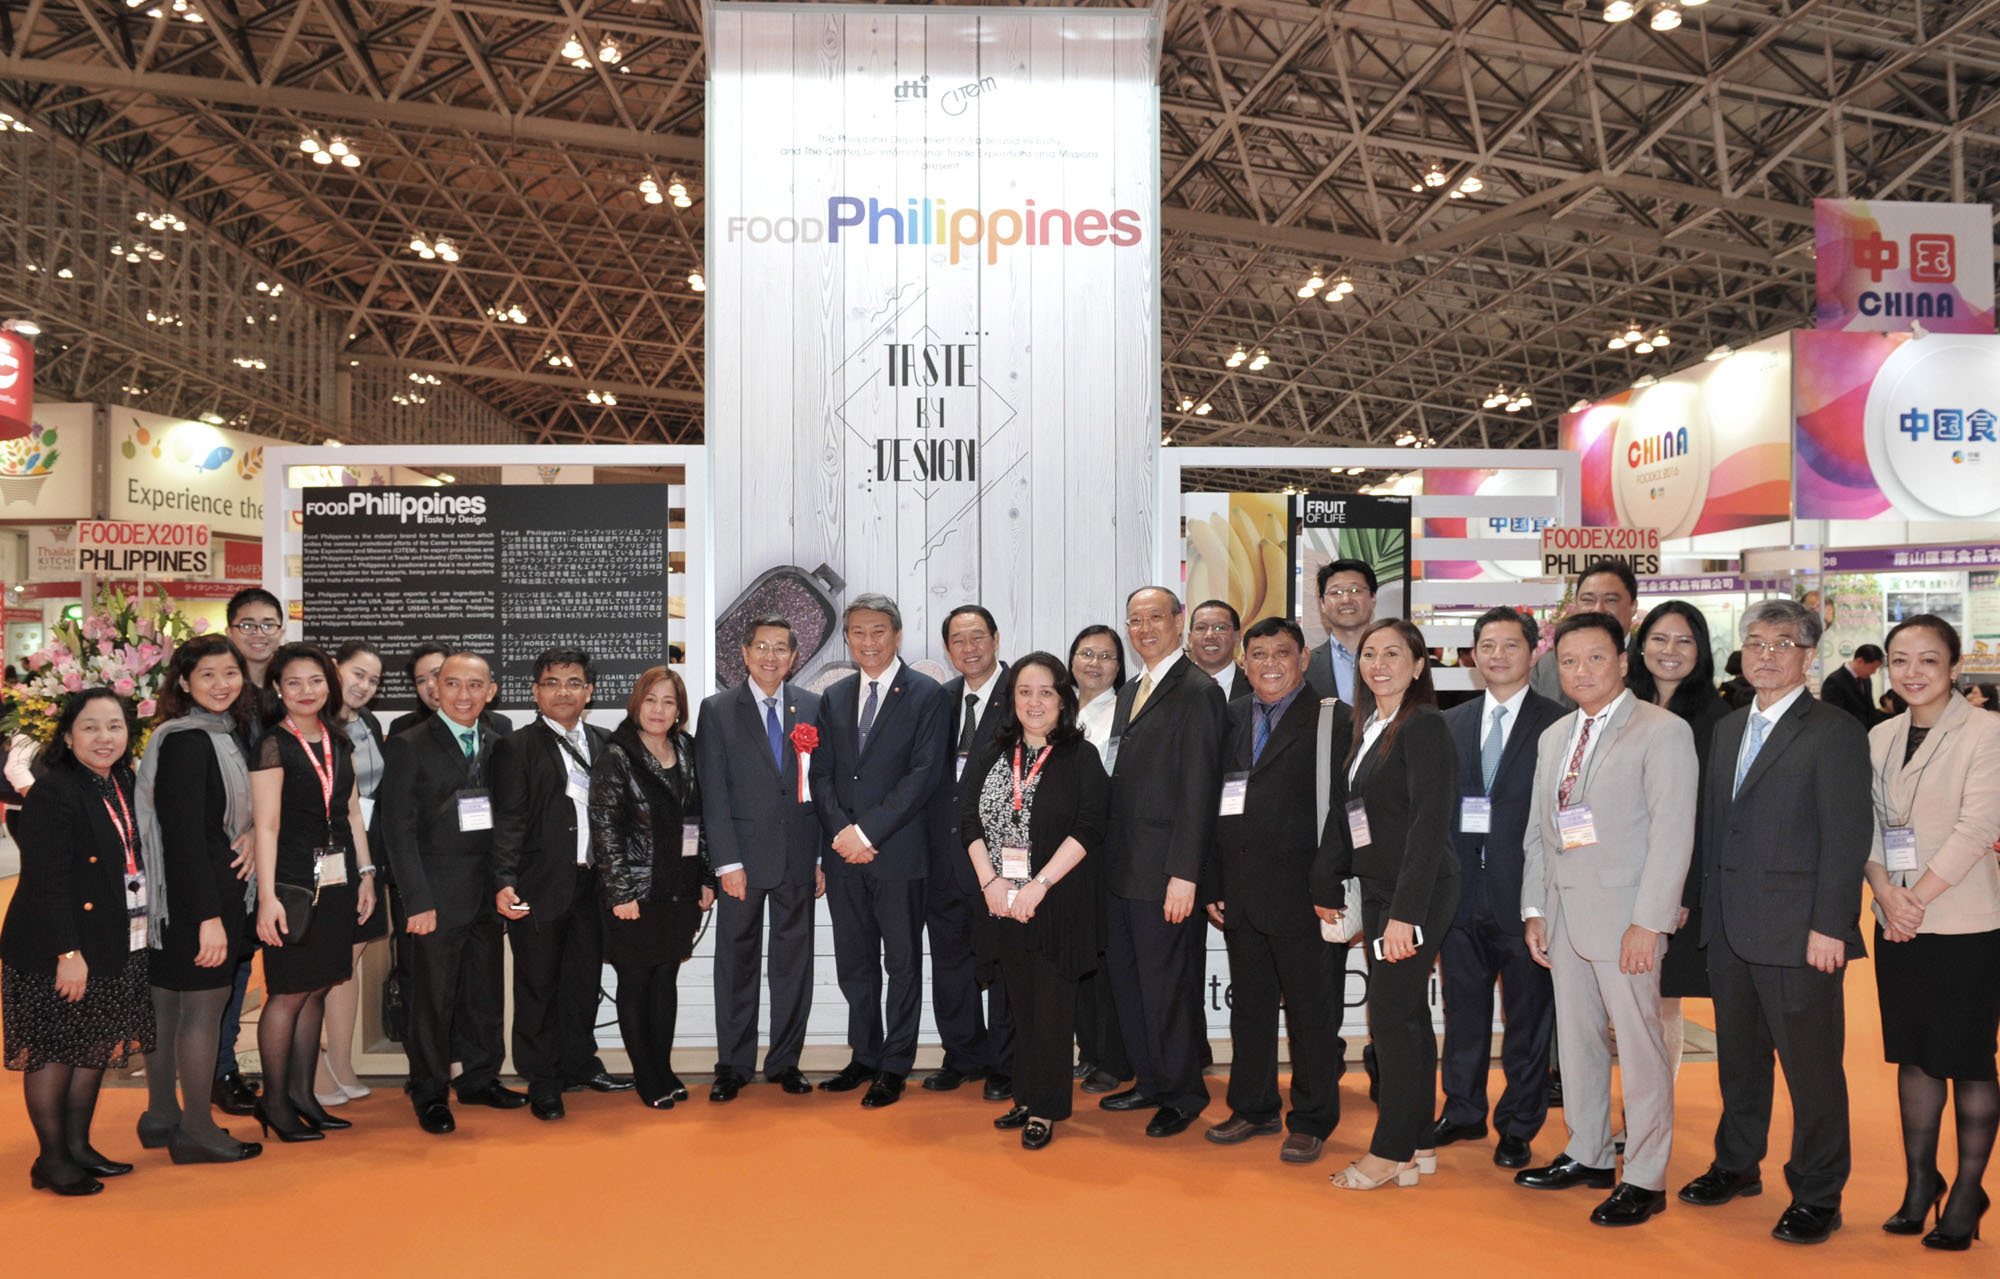 Philippine Ambassador Manuel M. Lopez (10th from left) poses with participants and embassy staff in front of the Philippines pavilion. | YOSHIAKI MIURA